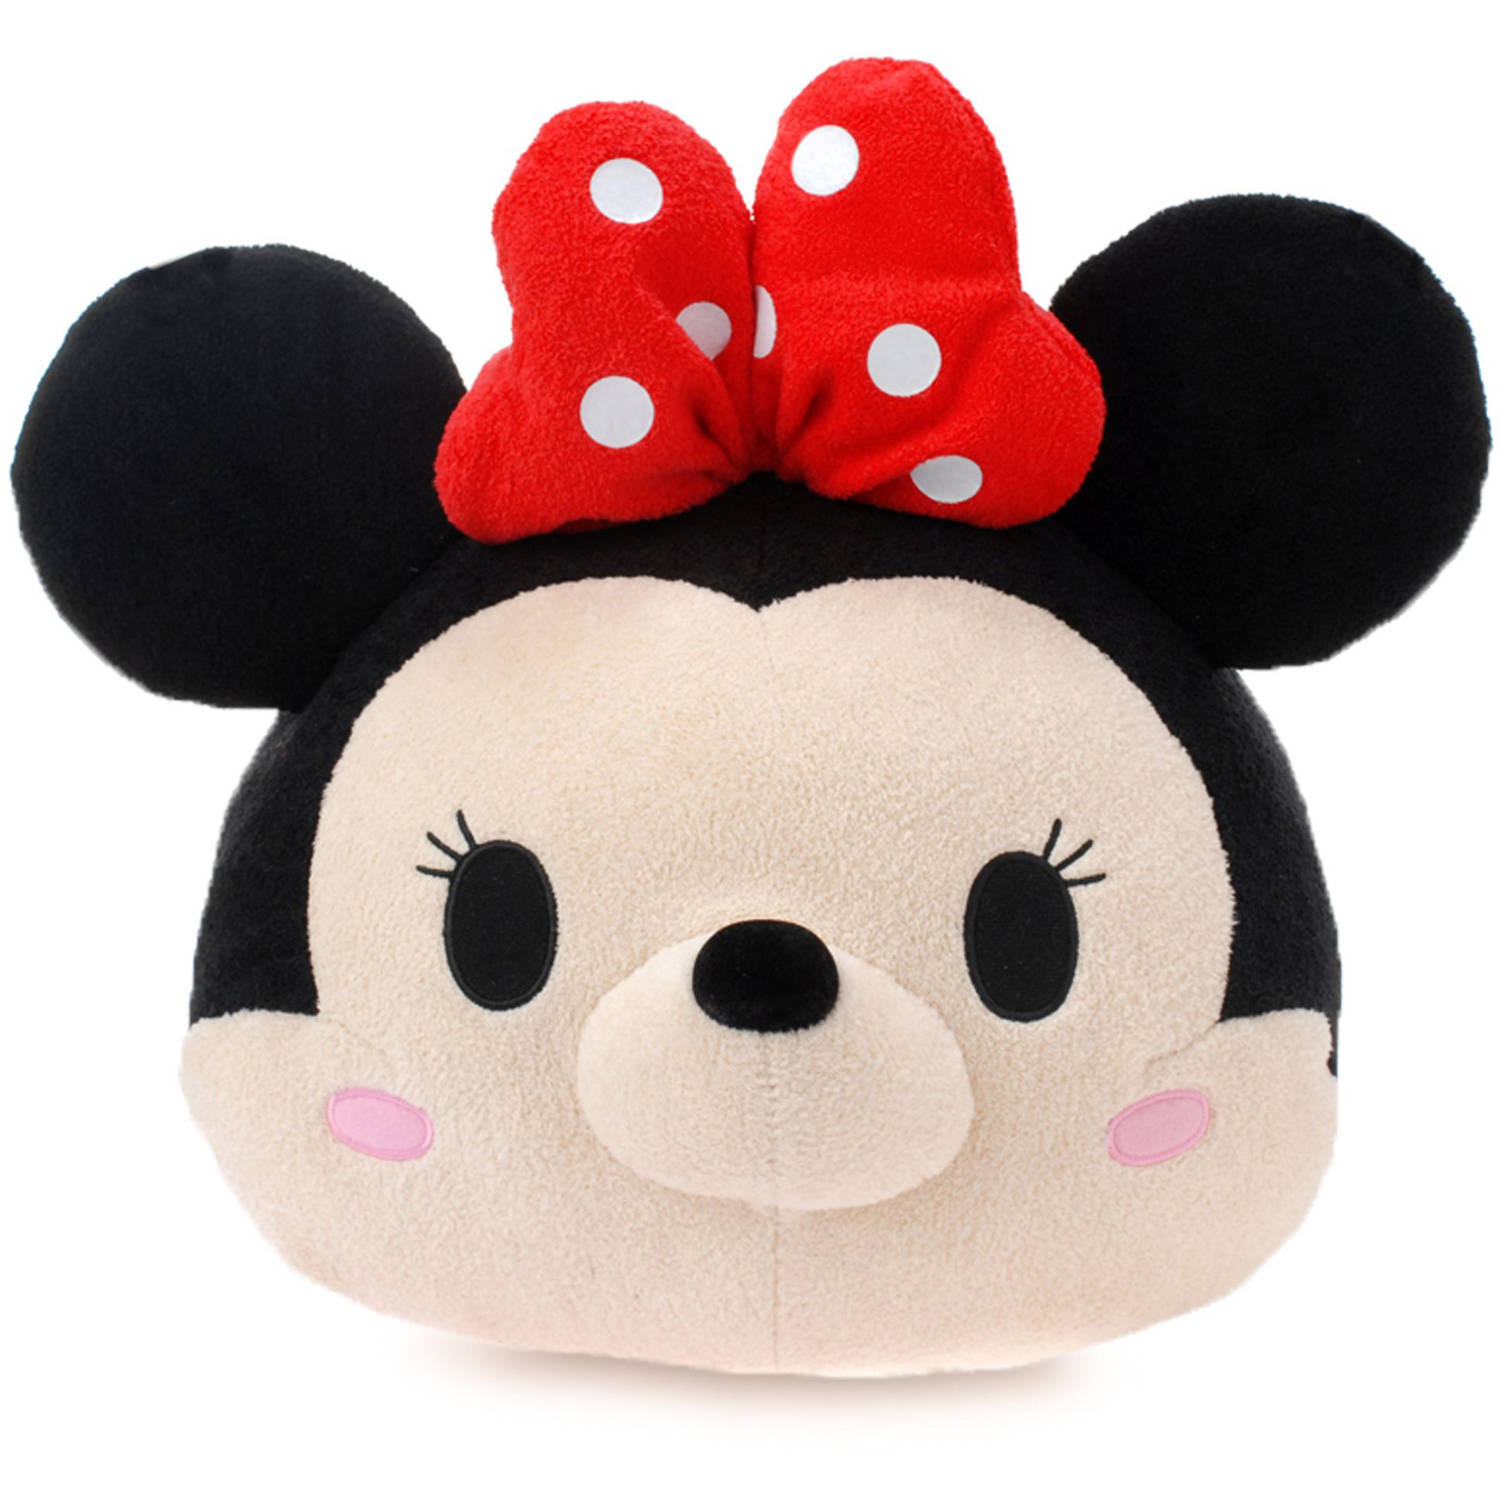 Disney Tsum Tsum Medium Minnie Mouse Plush